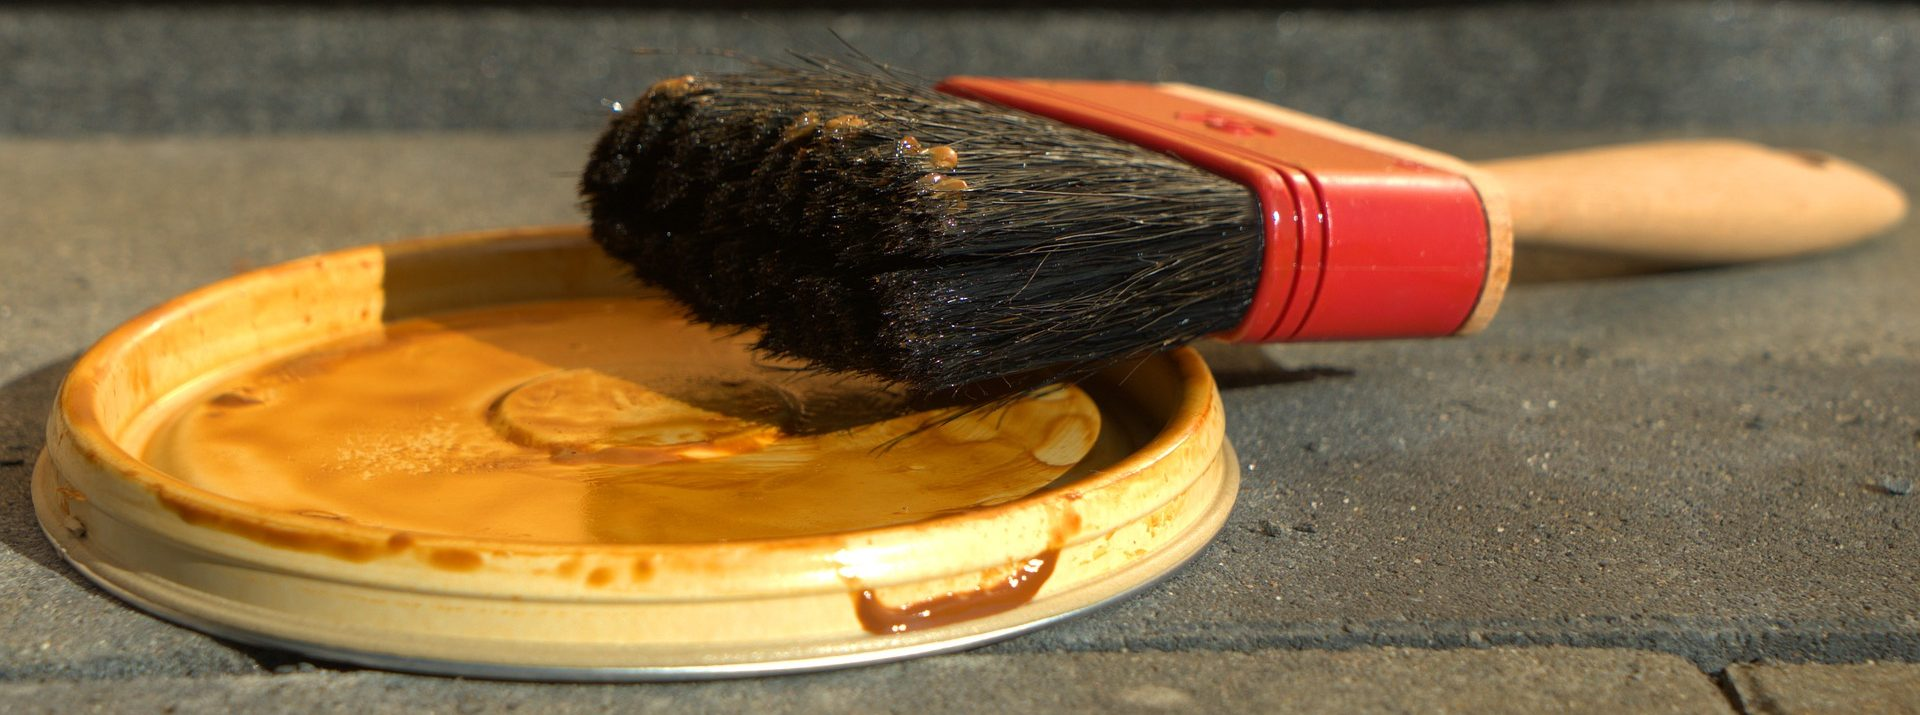 Image of a new homeowners painting brush